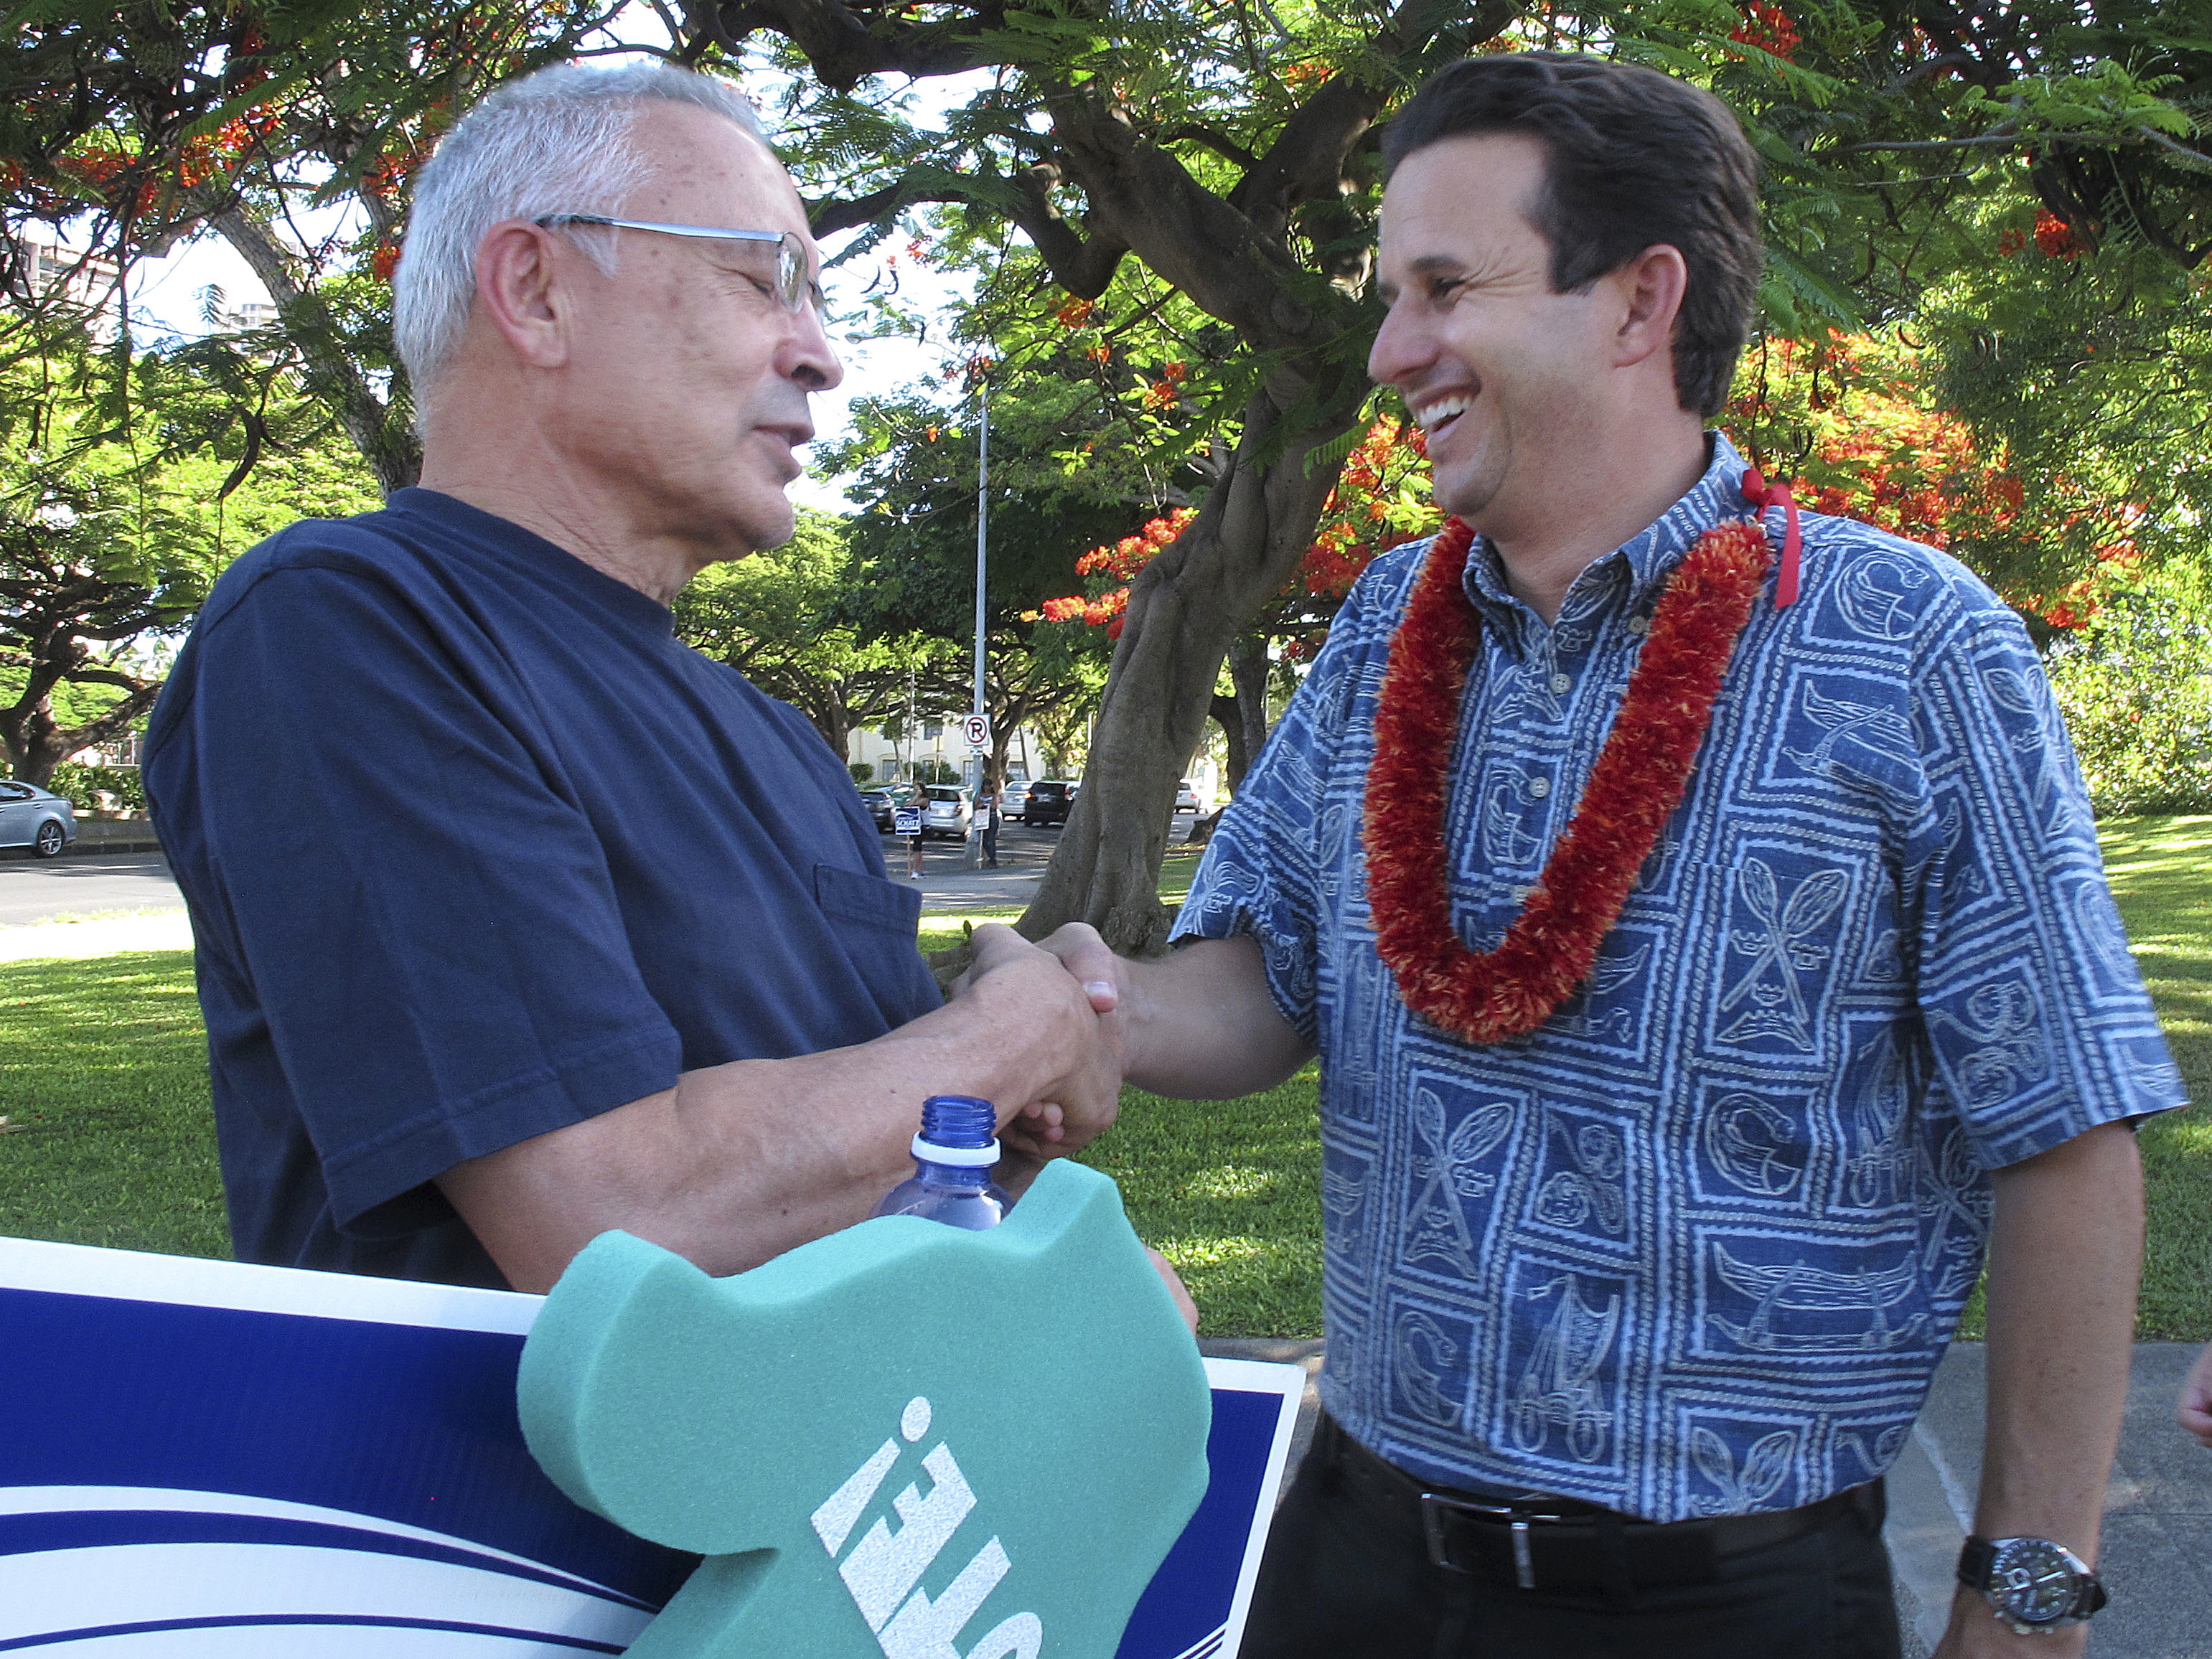 U.S. Sen. Brian Schatz, right, greets a supporter during a campaign event in Honolulu in July.